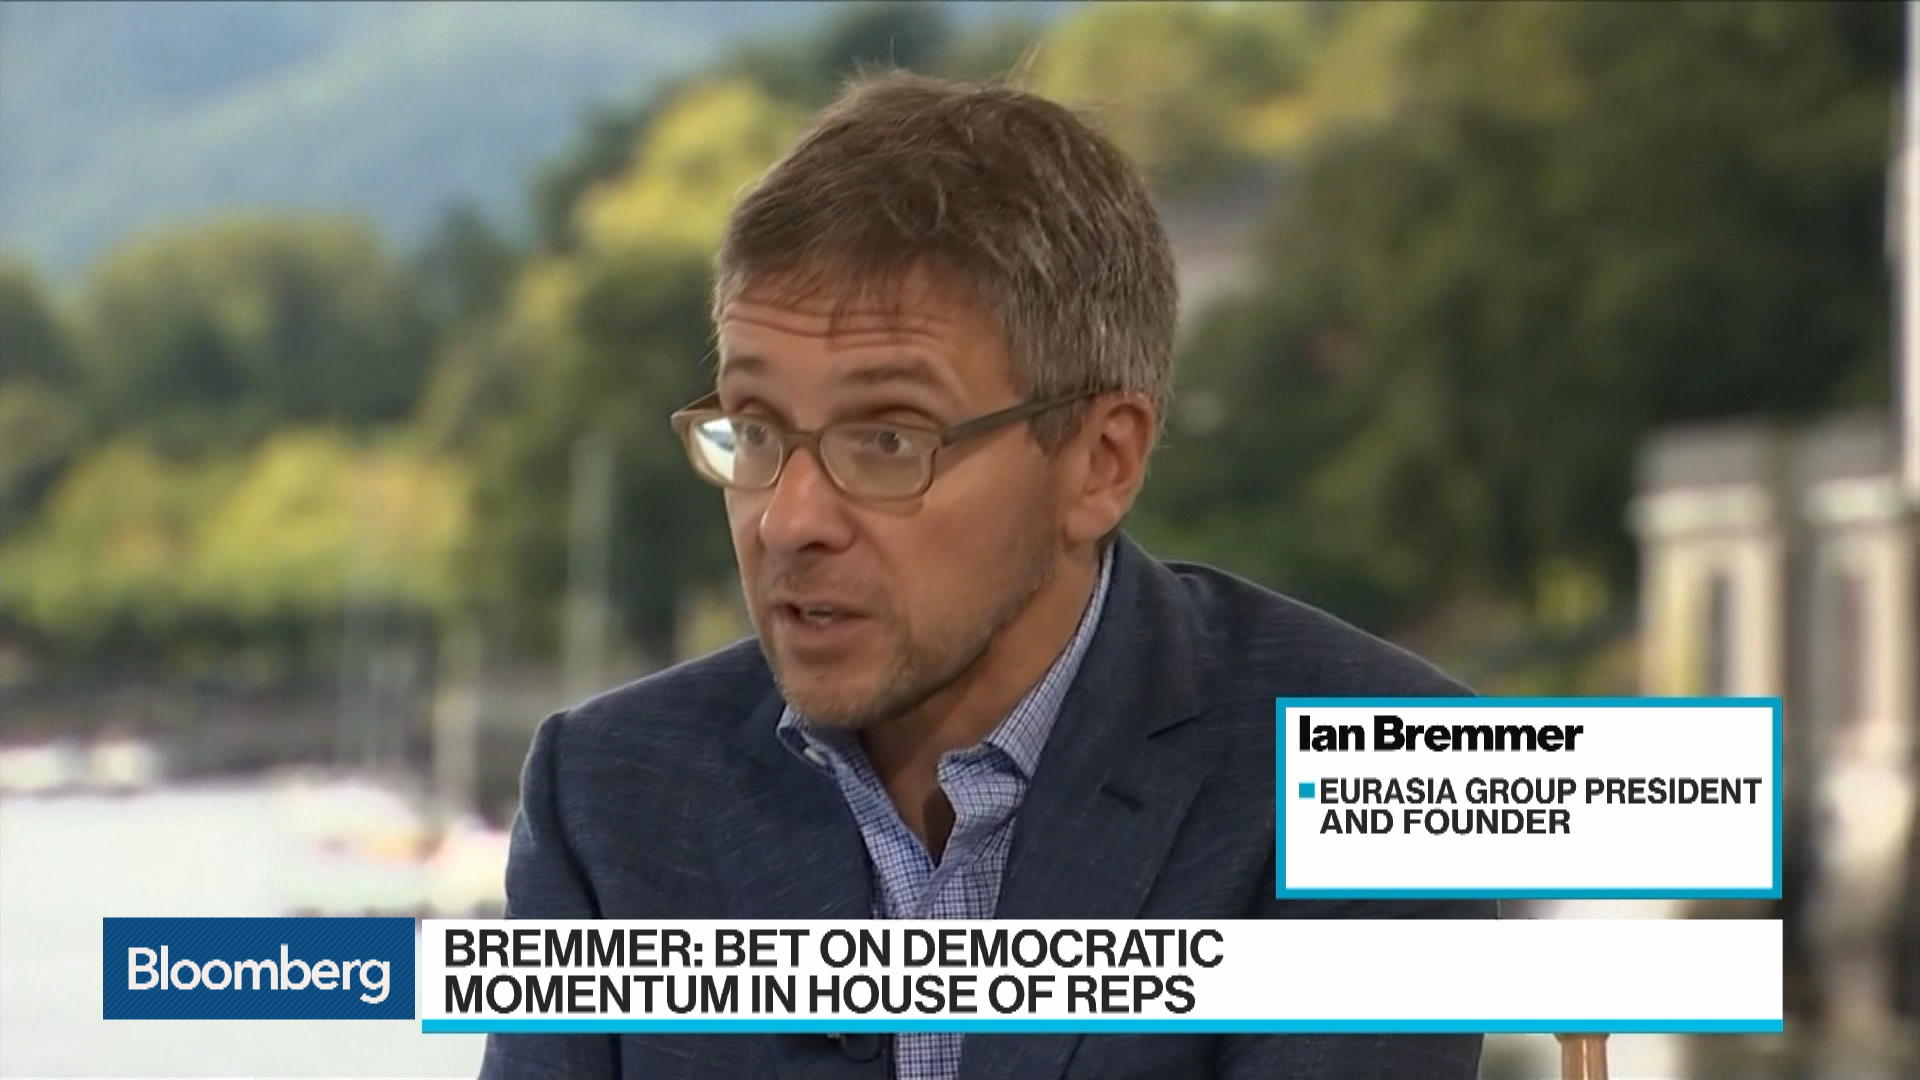 Bremmer Sees Democrat `Momentum' in House at Midterms